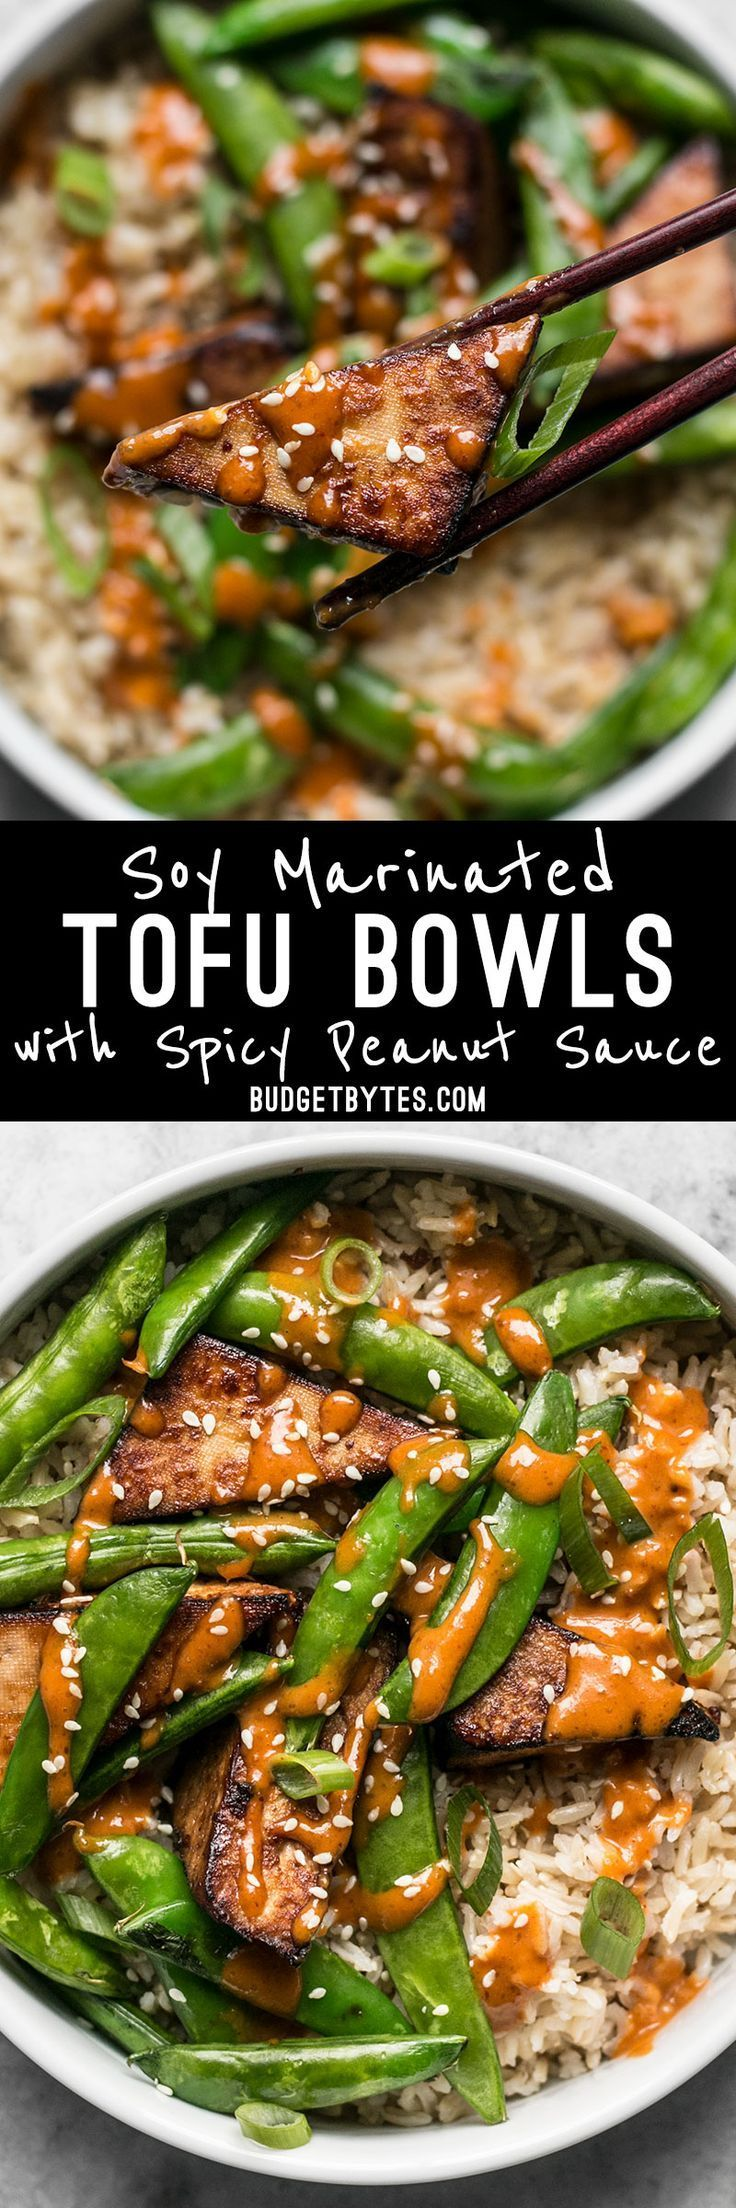 These vegan Soy Marinated Tofu Bowls are full of rich flavors and plenty of texture to keep your taste buds happy and your belly full.